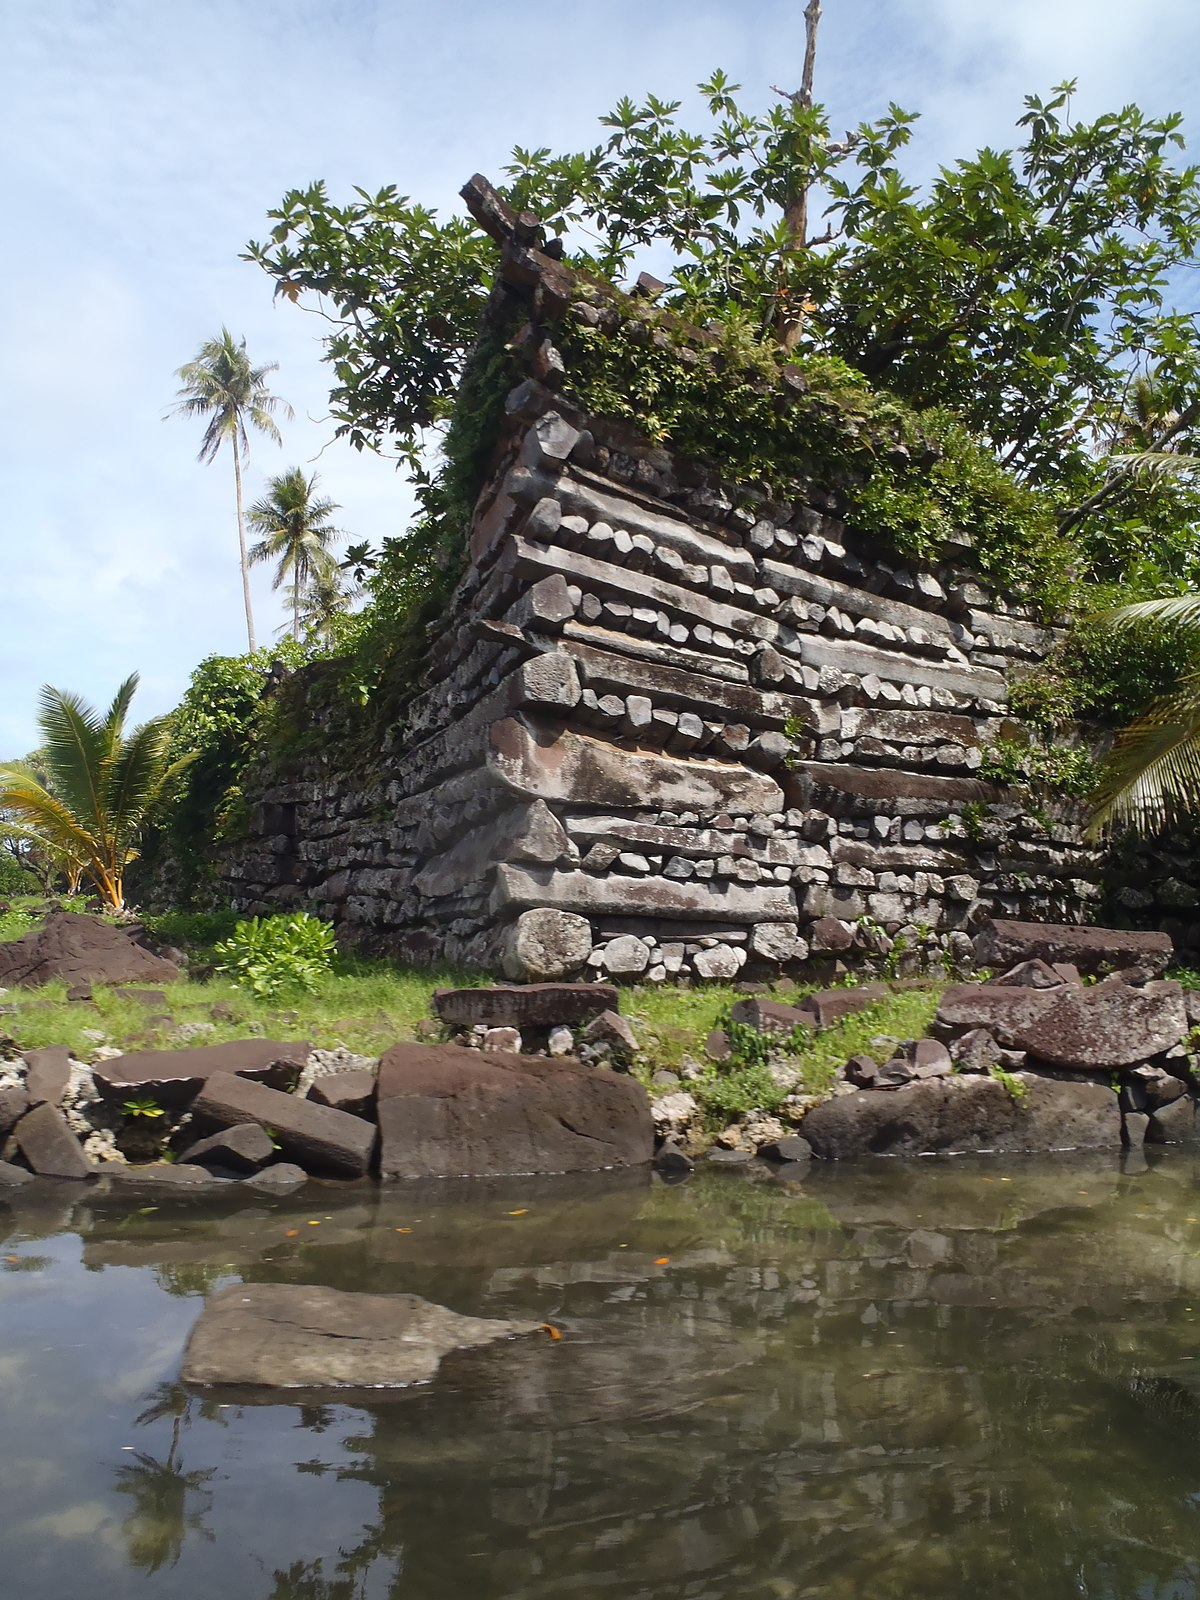 File:Nan Madol megalithic site, Pohnpei (Federated States ...